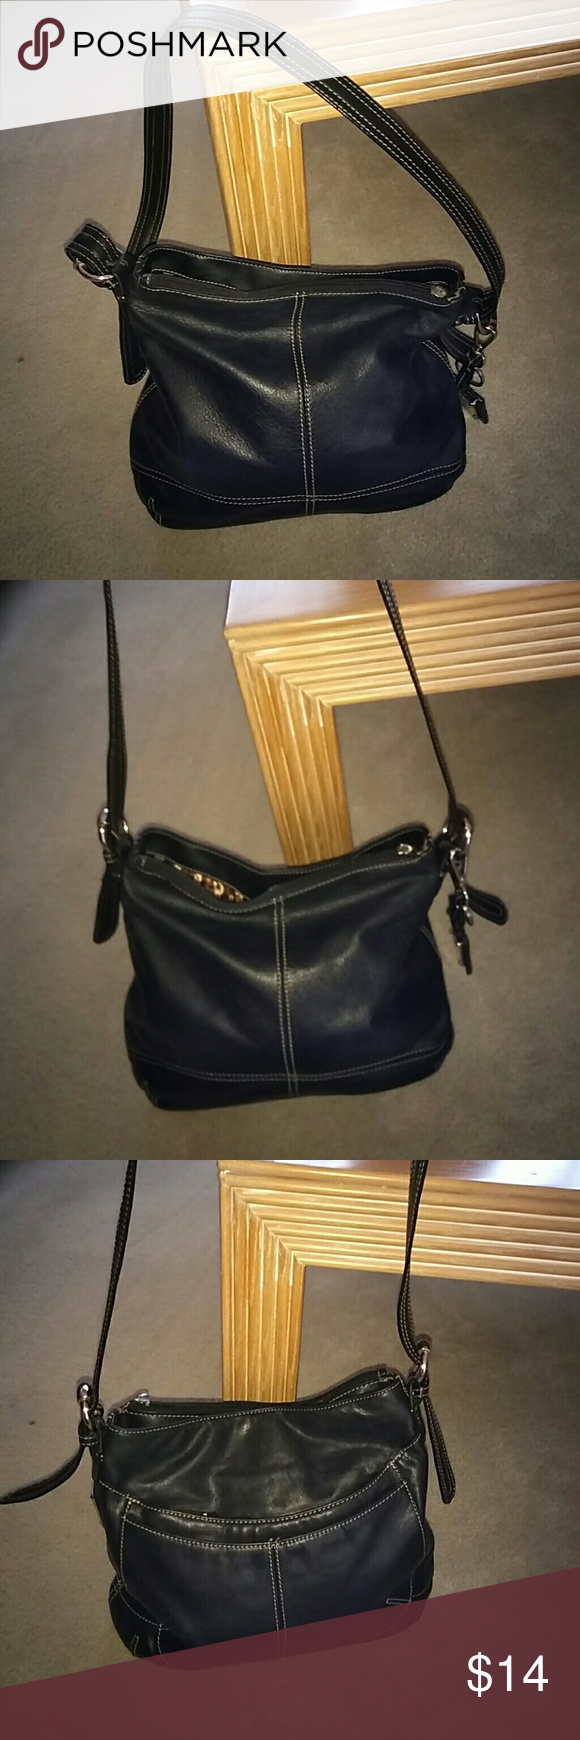 Tignanello Black Leather Shoulder Bag S M size black leather shoulder bag  by Tignanello. One zipper is missing the pull part 39c887e51fb6f